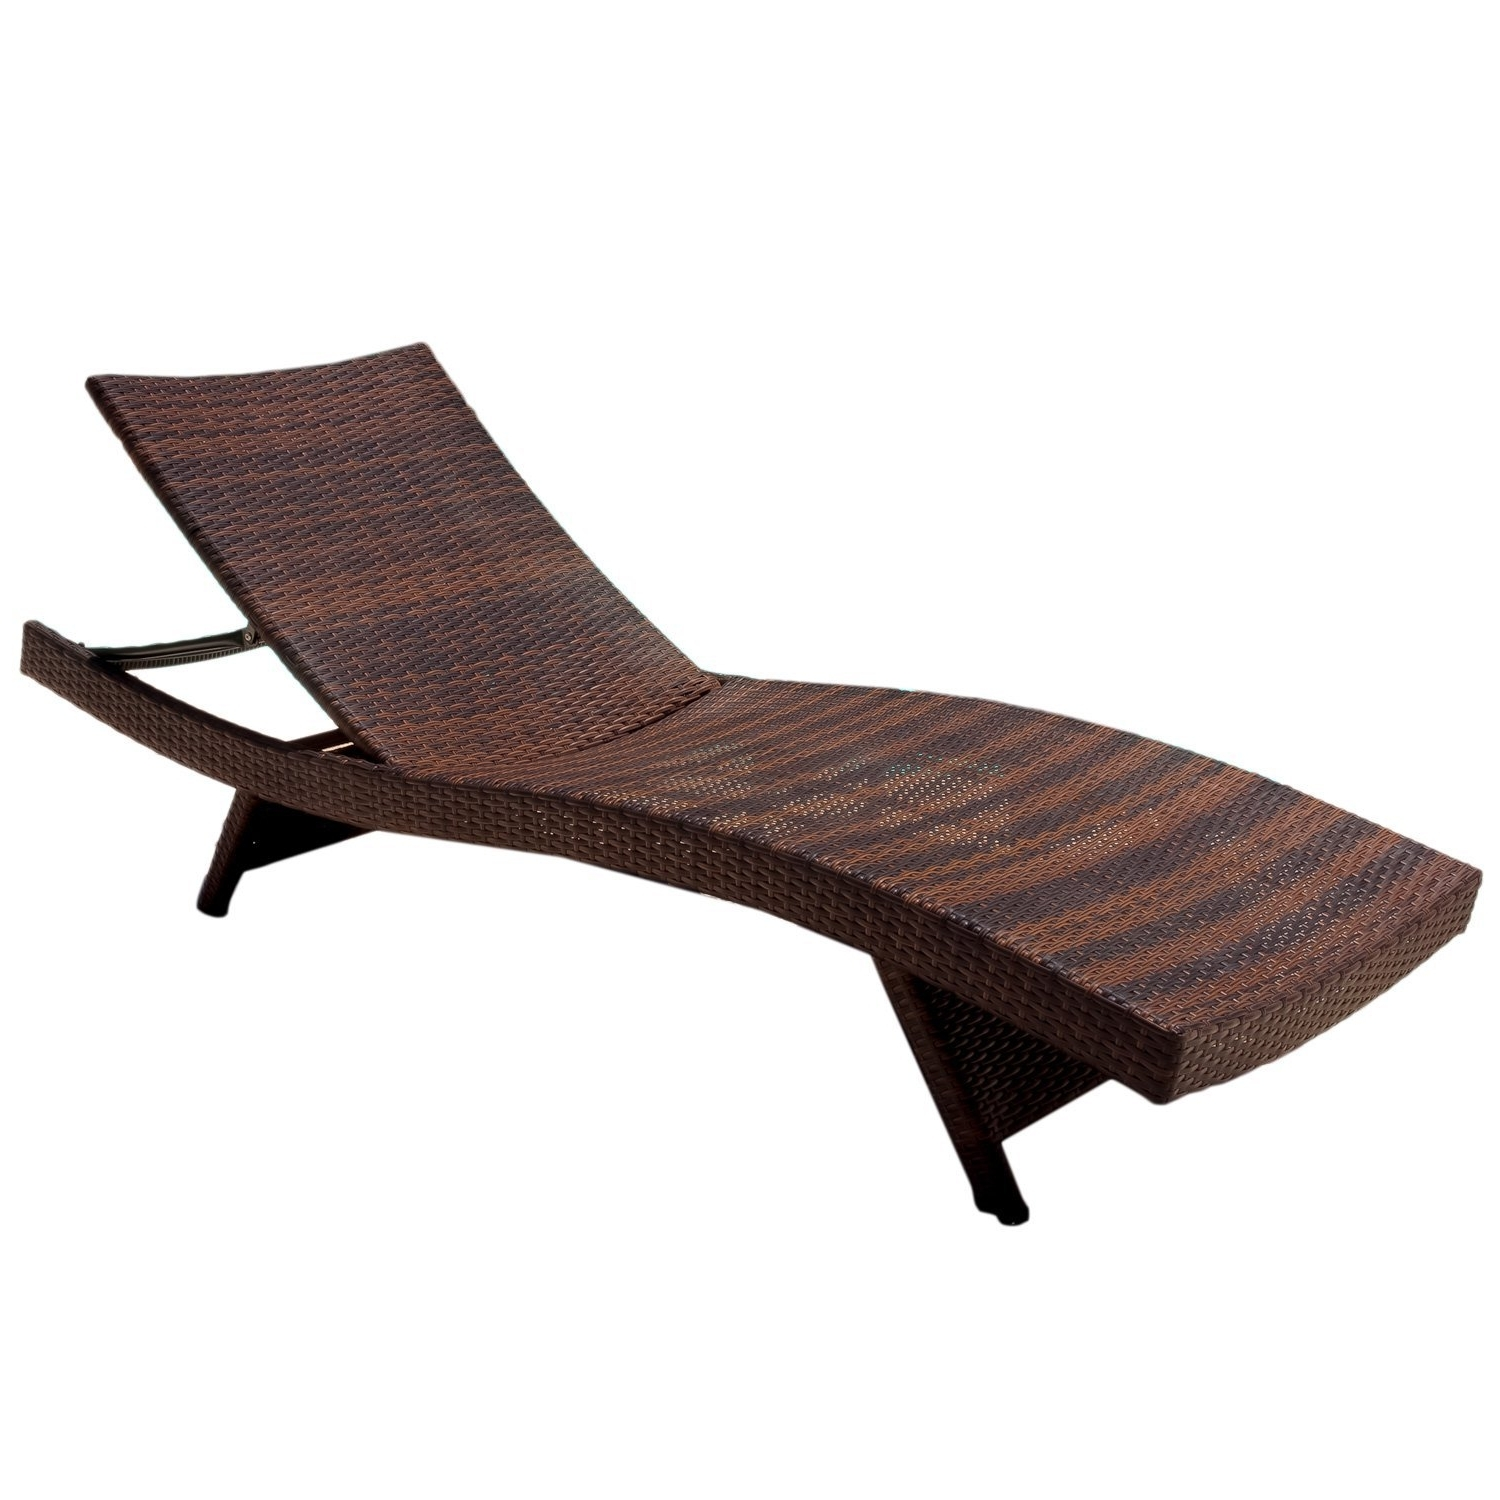 Trendy Wicker Chaise Lounge Chairs Inside Amazon : Best Selling Outdoor Adjustable Wicker Lounge, Brown (View 9 of 15)